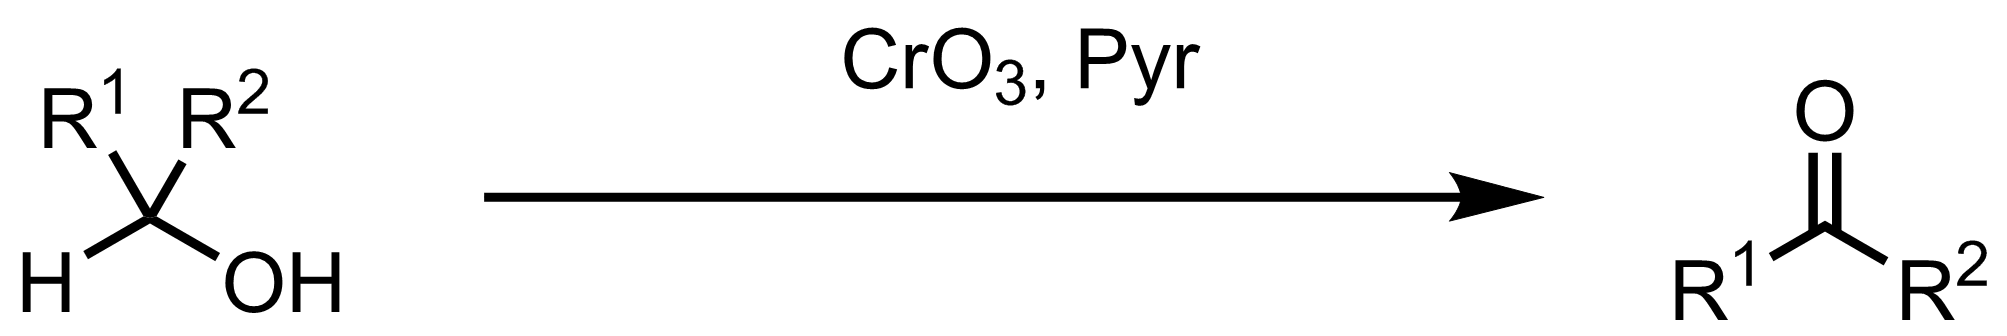 Schematic representation of the Collins Oxidation.